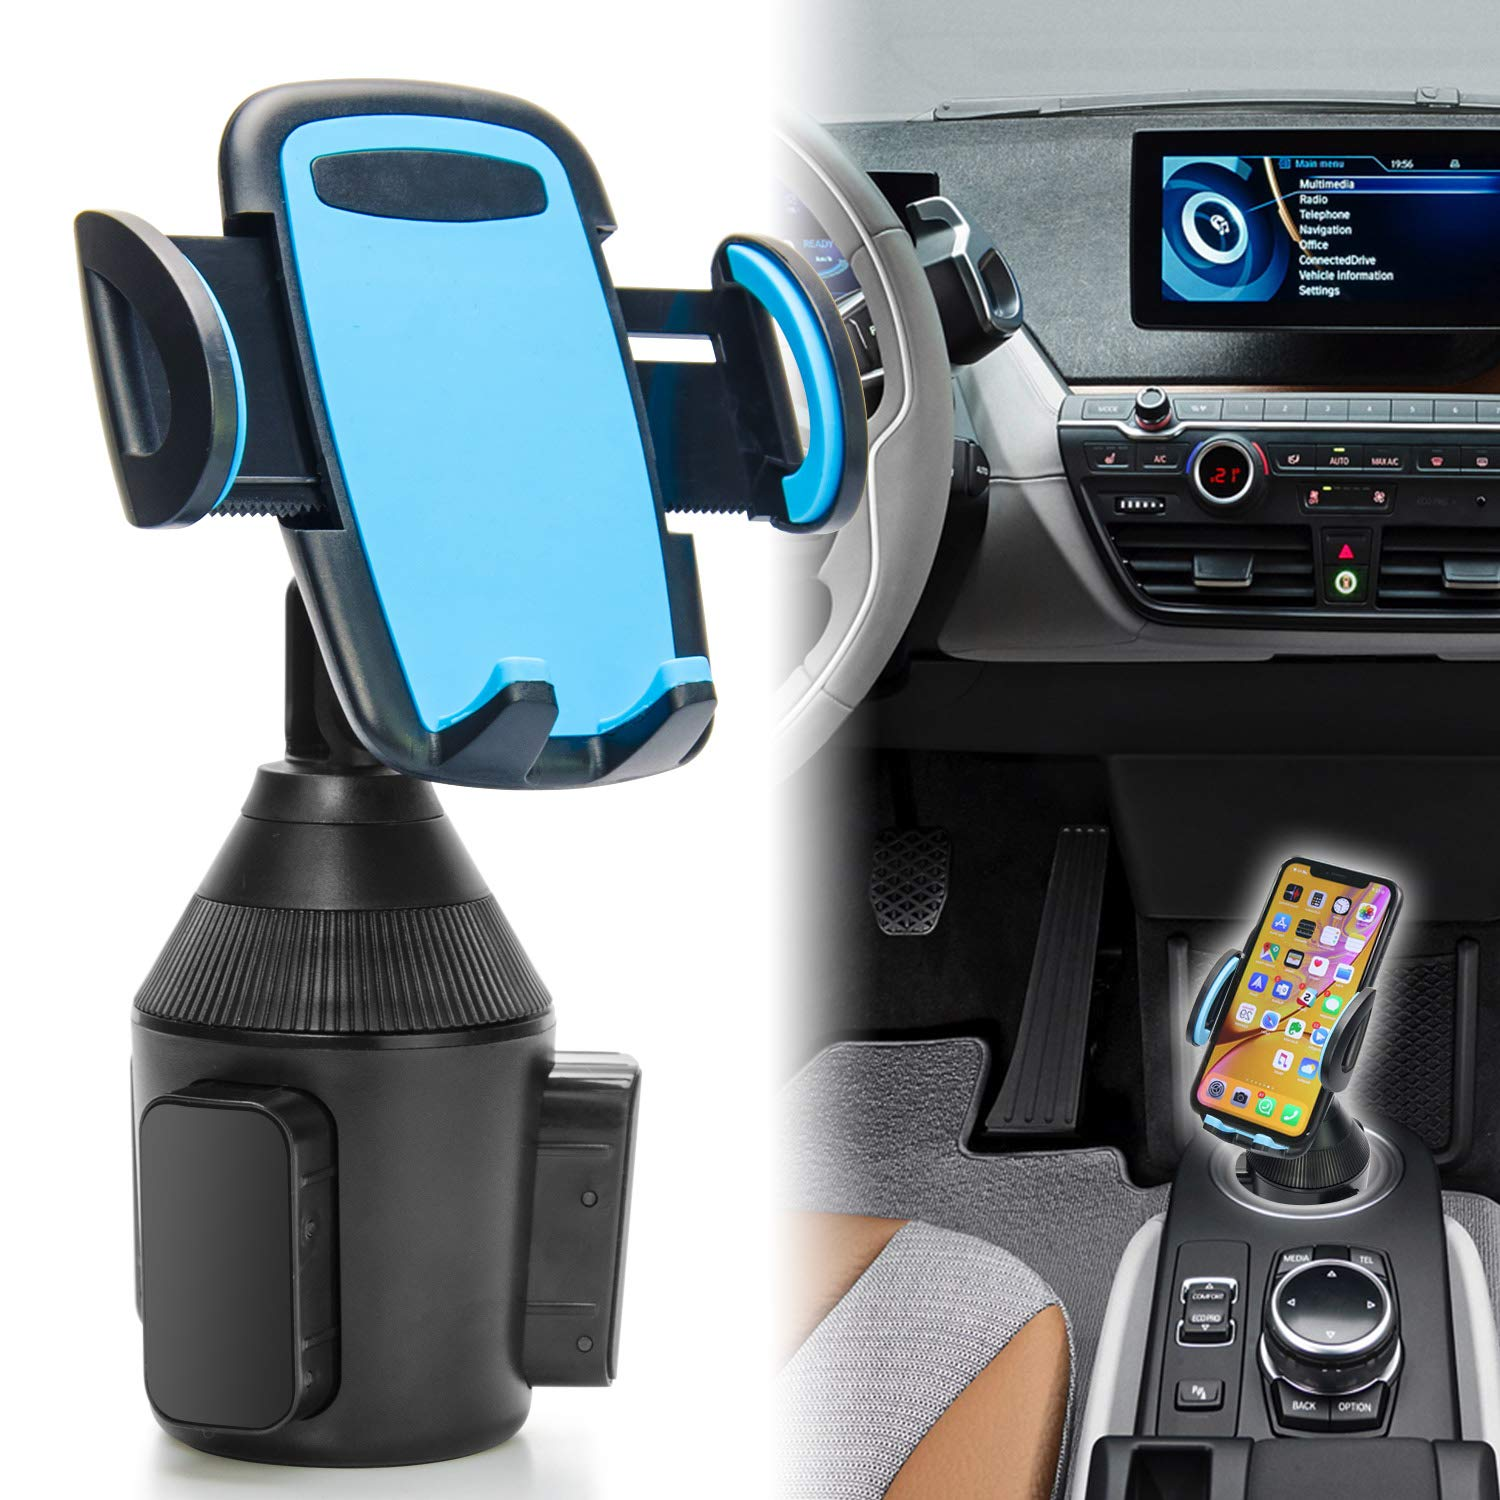 TOPGO Universal Adjustable Cup Holder Cradle Car Mount for Cell Phone iPhone Xs/XS Max/X/8/7 Plus/Galaxy (Blue)